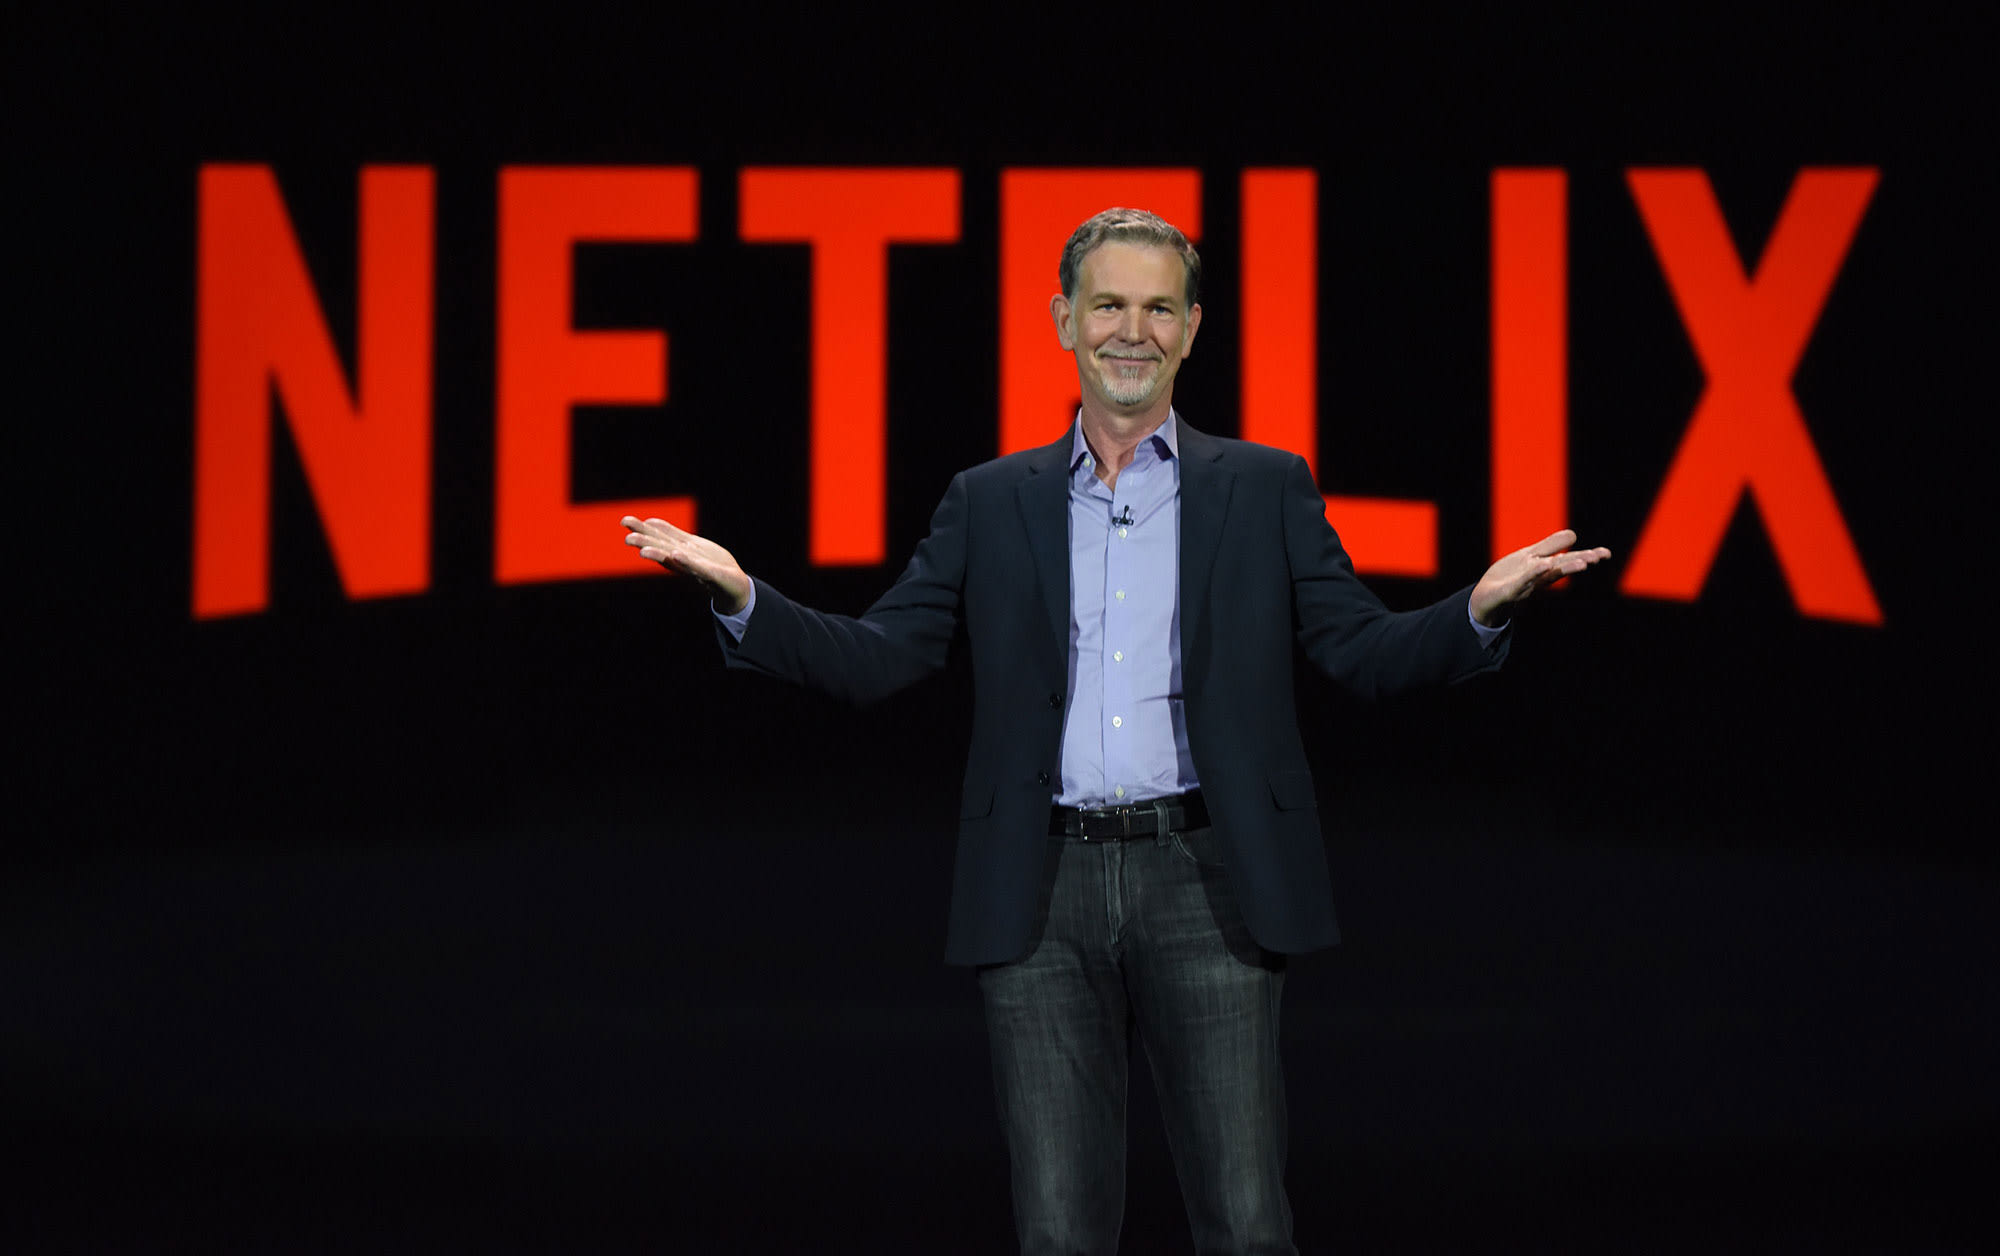 Netflix set to report Q2 earnings after the bell